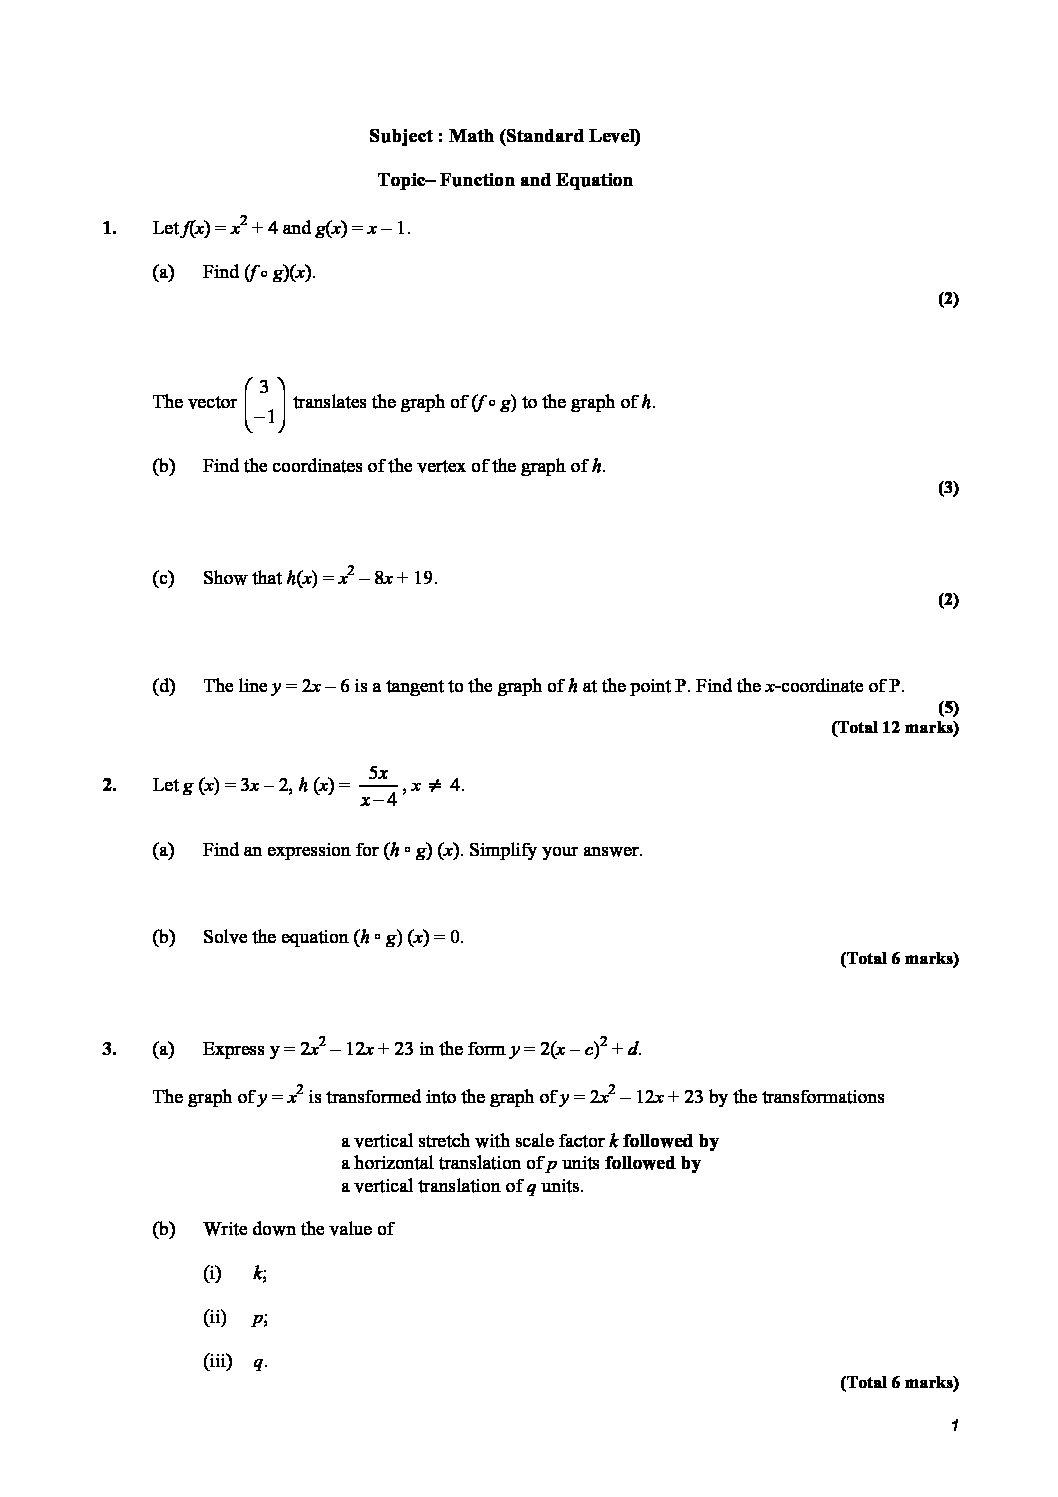 This Post About Practice Worksheet Of Questions Of Function And Equation The Type Of Questions